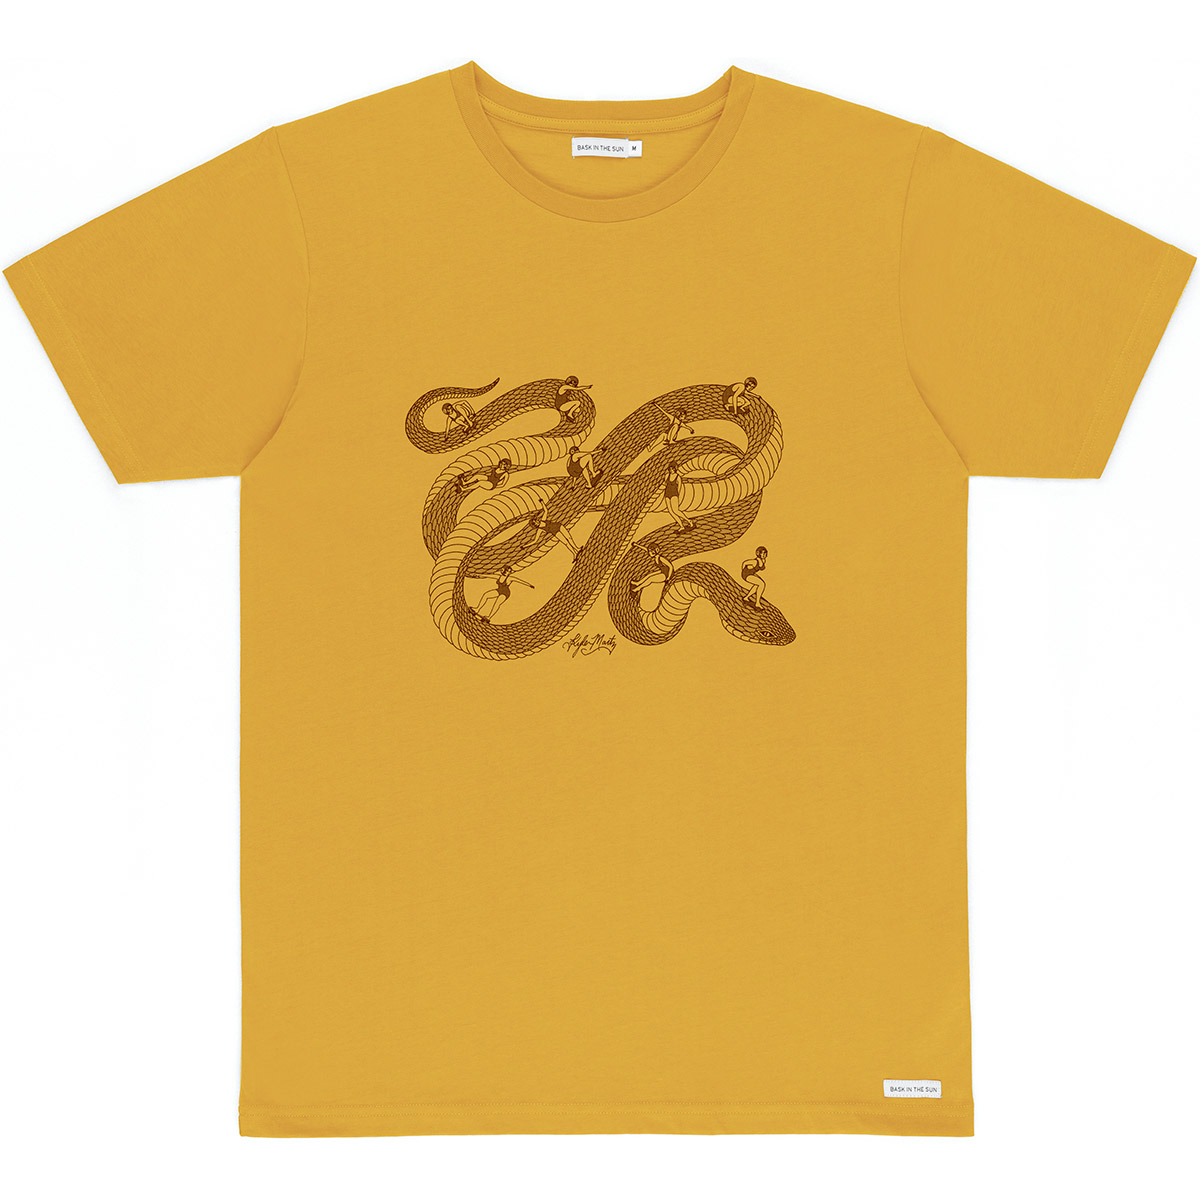 Bask in the Sun - T-shirt en coton bio camel snakepark